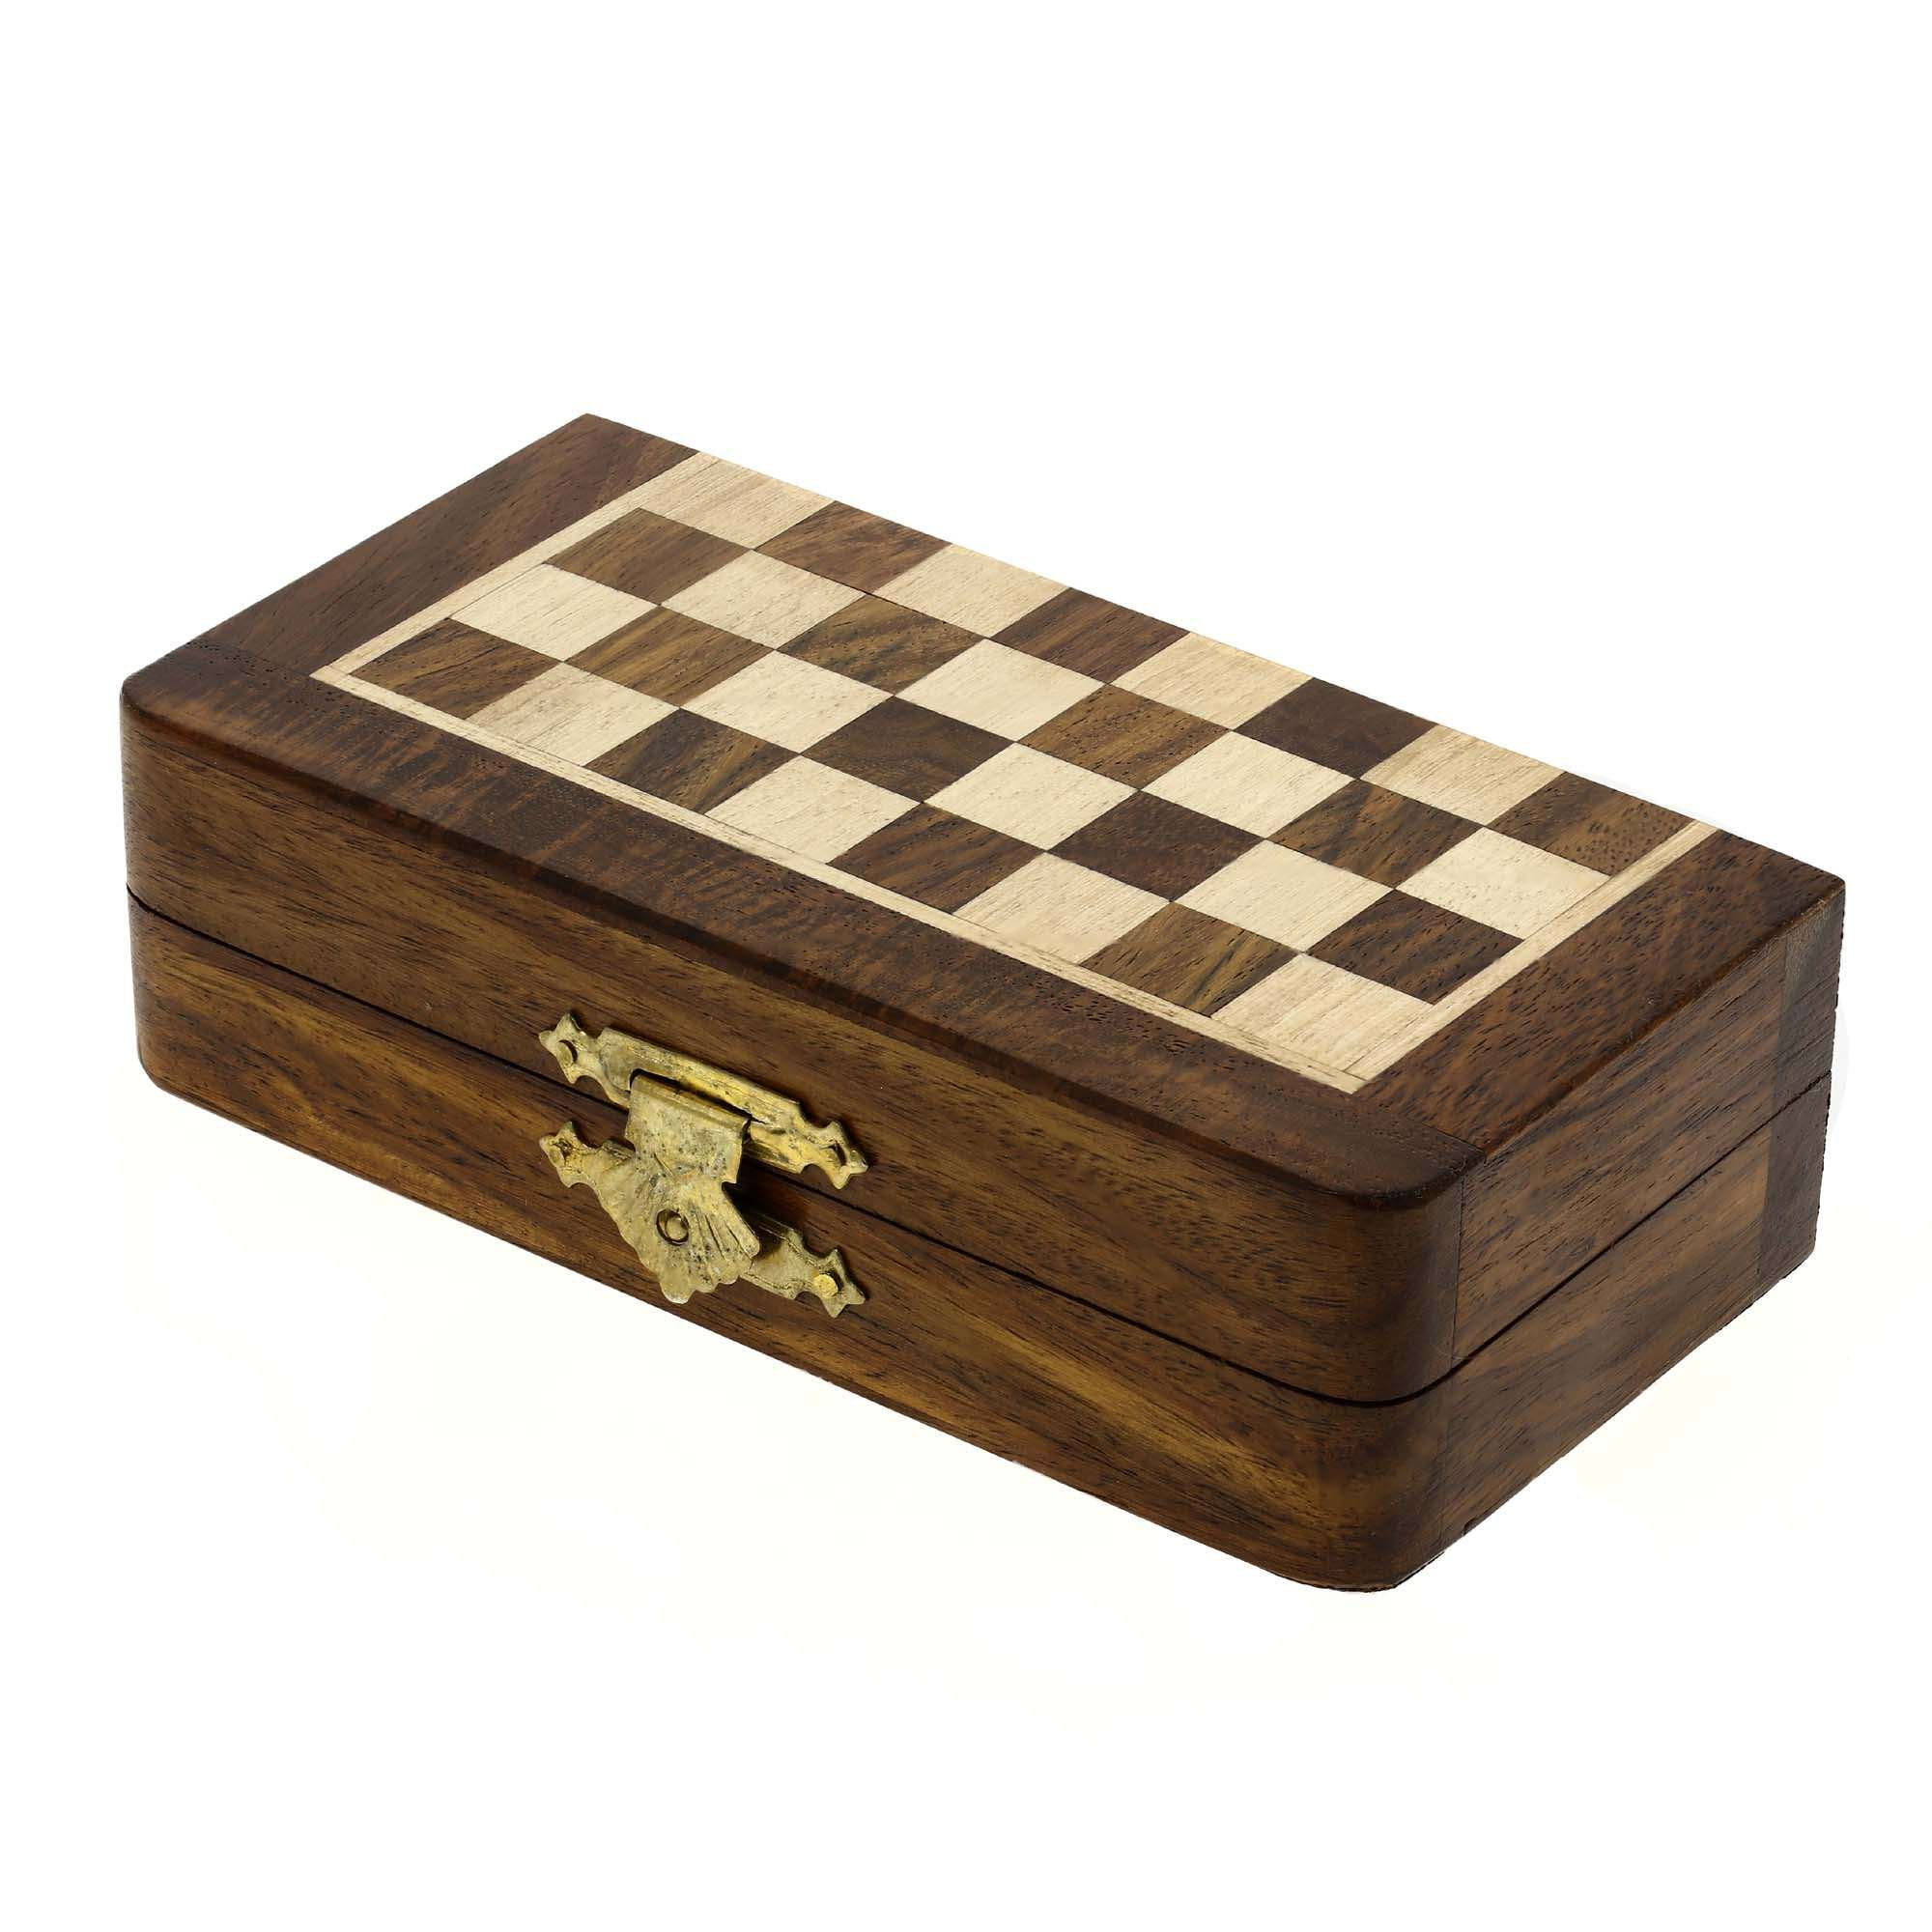 Travel Folding Chess Set And Board Wooden Pieces Gifts Unusual